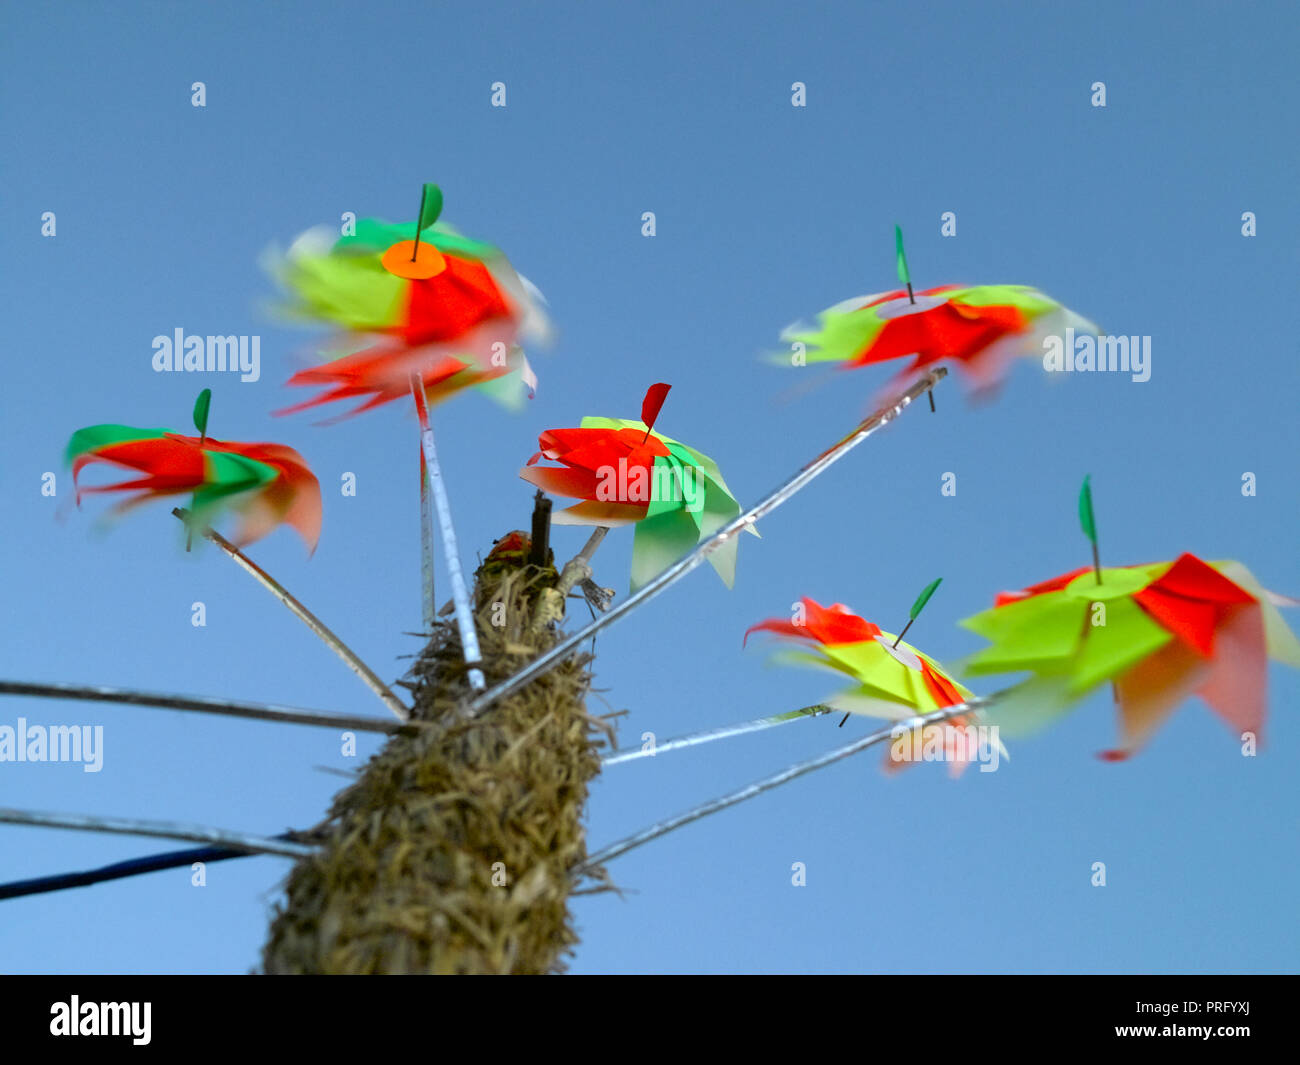 PIN WHEELS WHIRLING IN THE WIND AT CHOWPATTY, MUMBAI, INDIA, ASIA Stock Photo